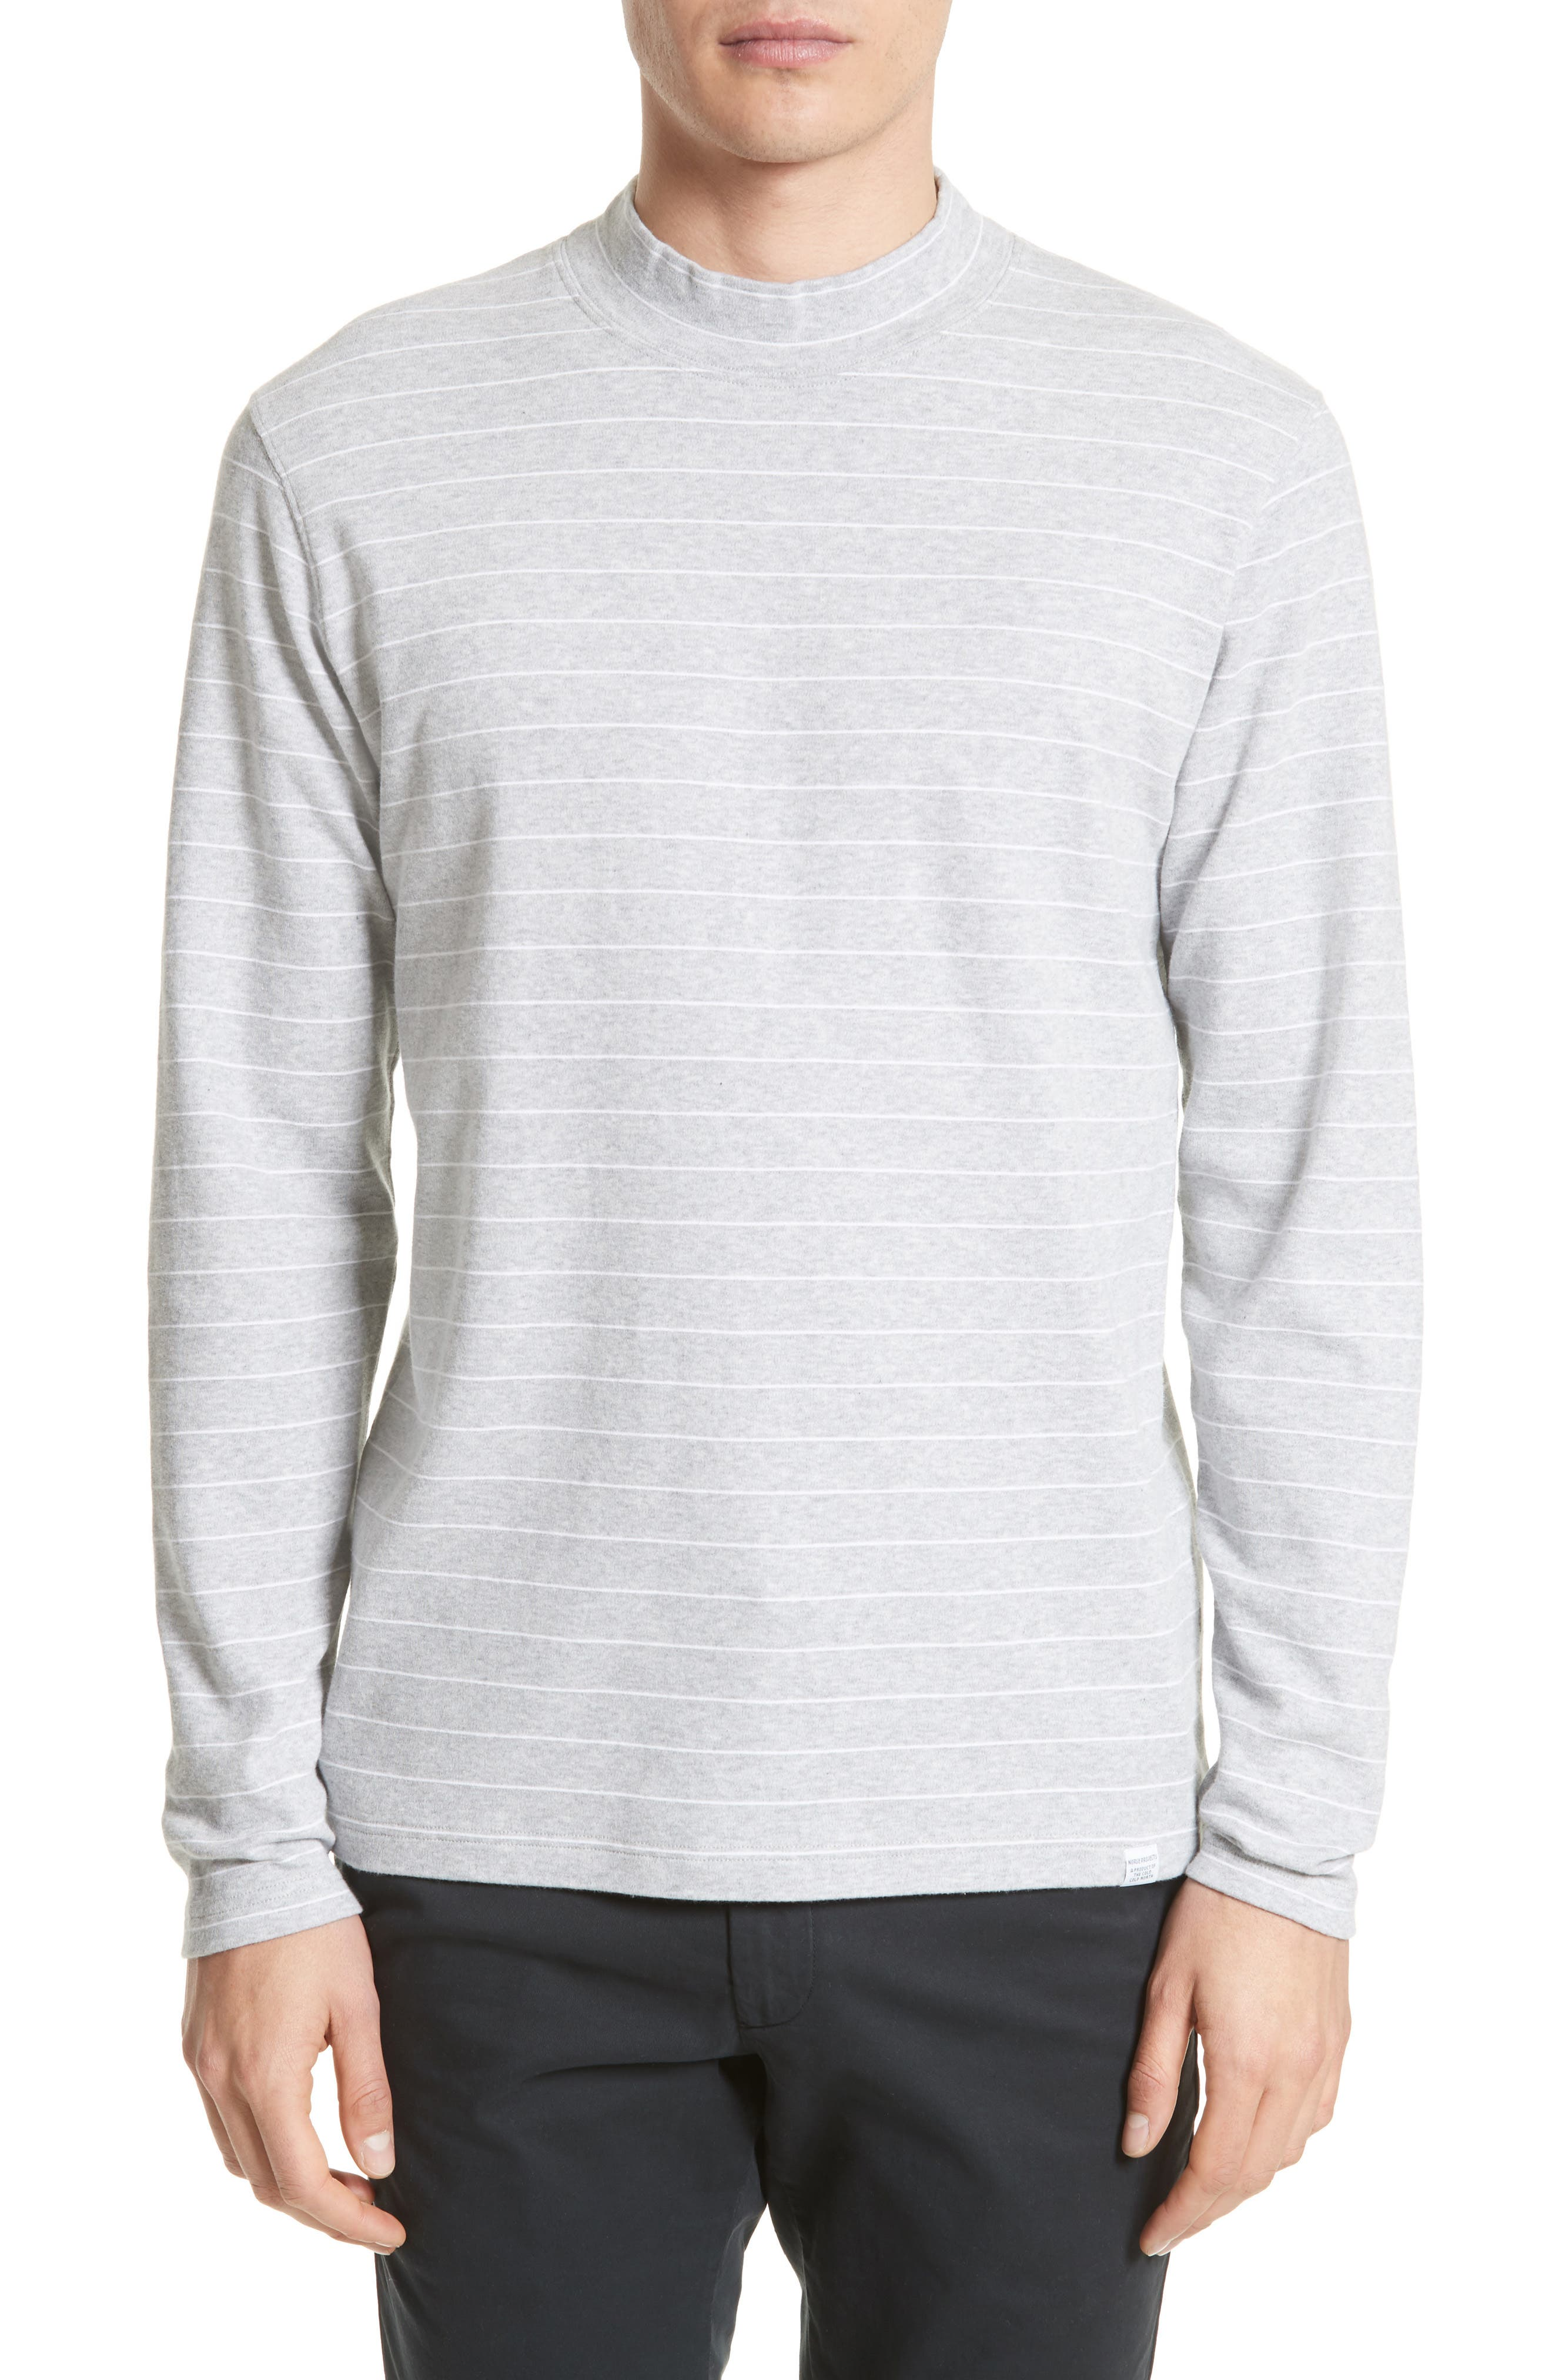 NORSE PROJECTS,                             Harald Mock Neck T-Shirt,                             Main thumbnail 1, color,                             050